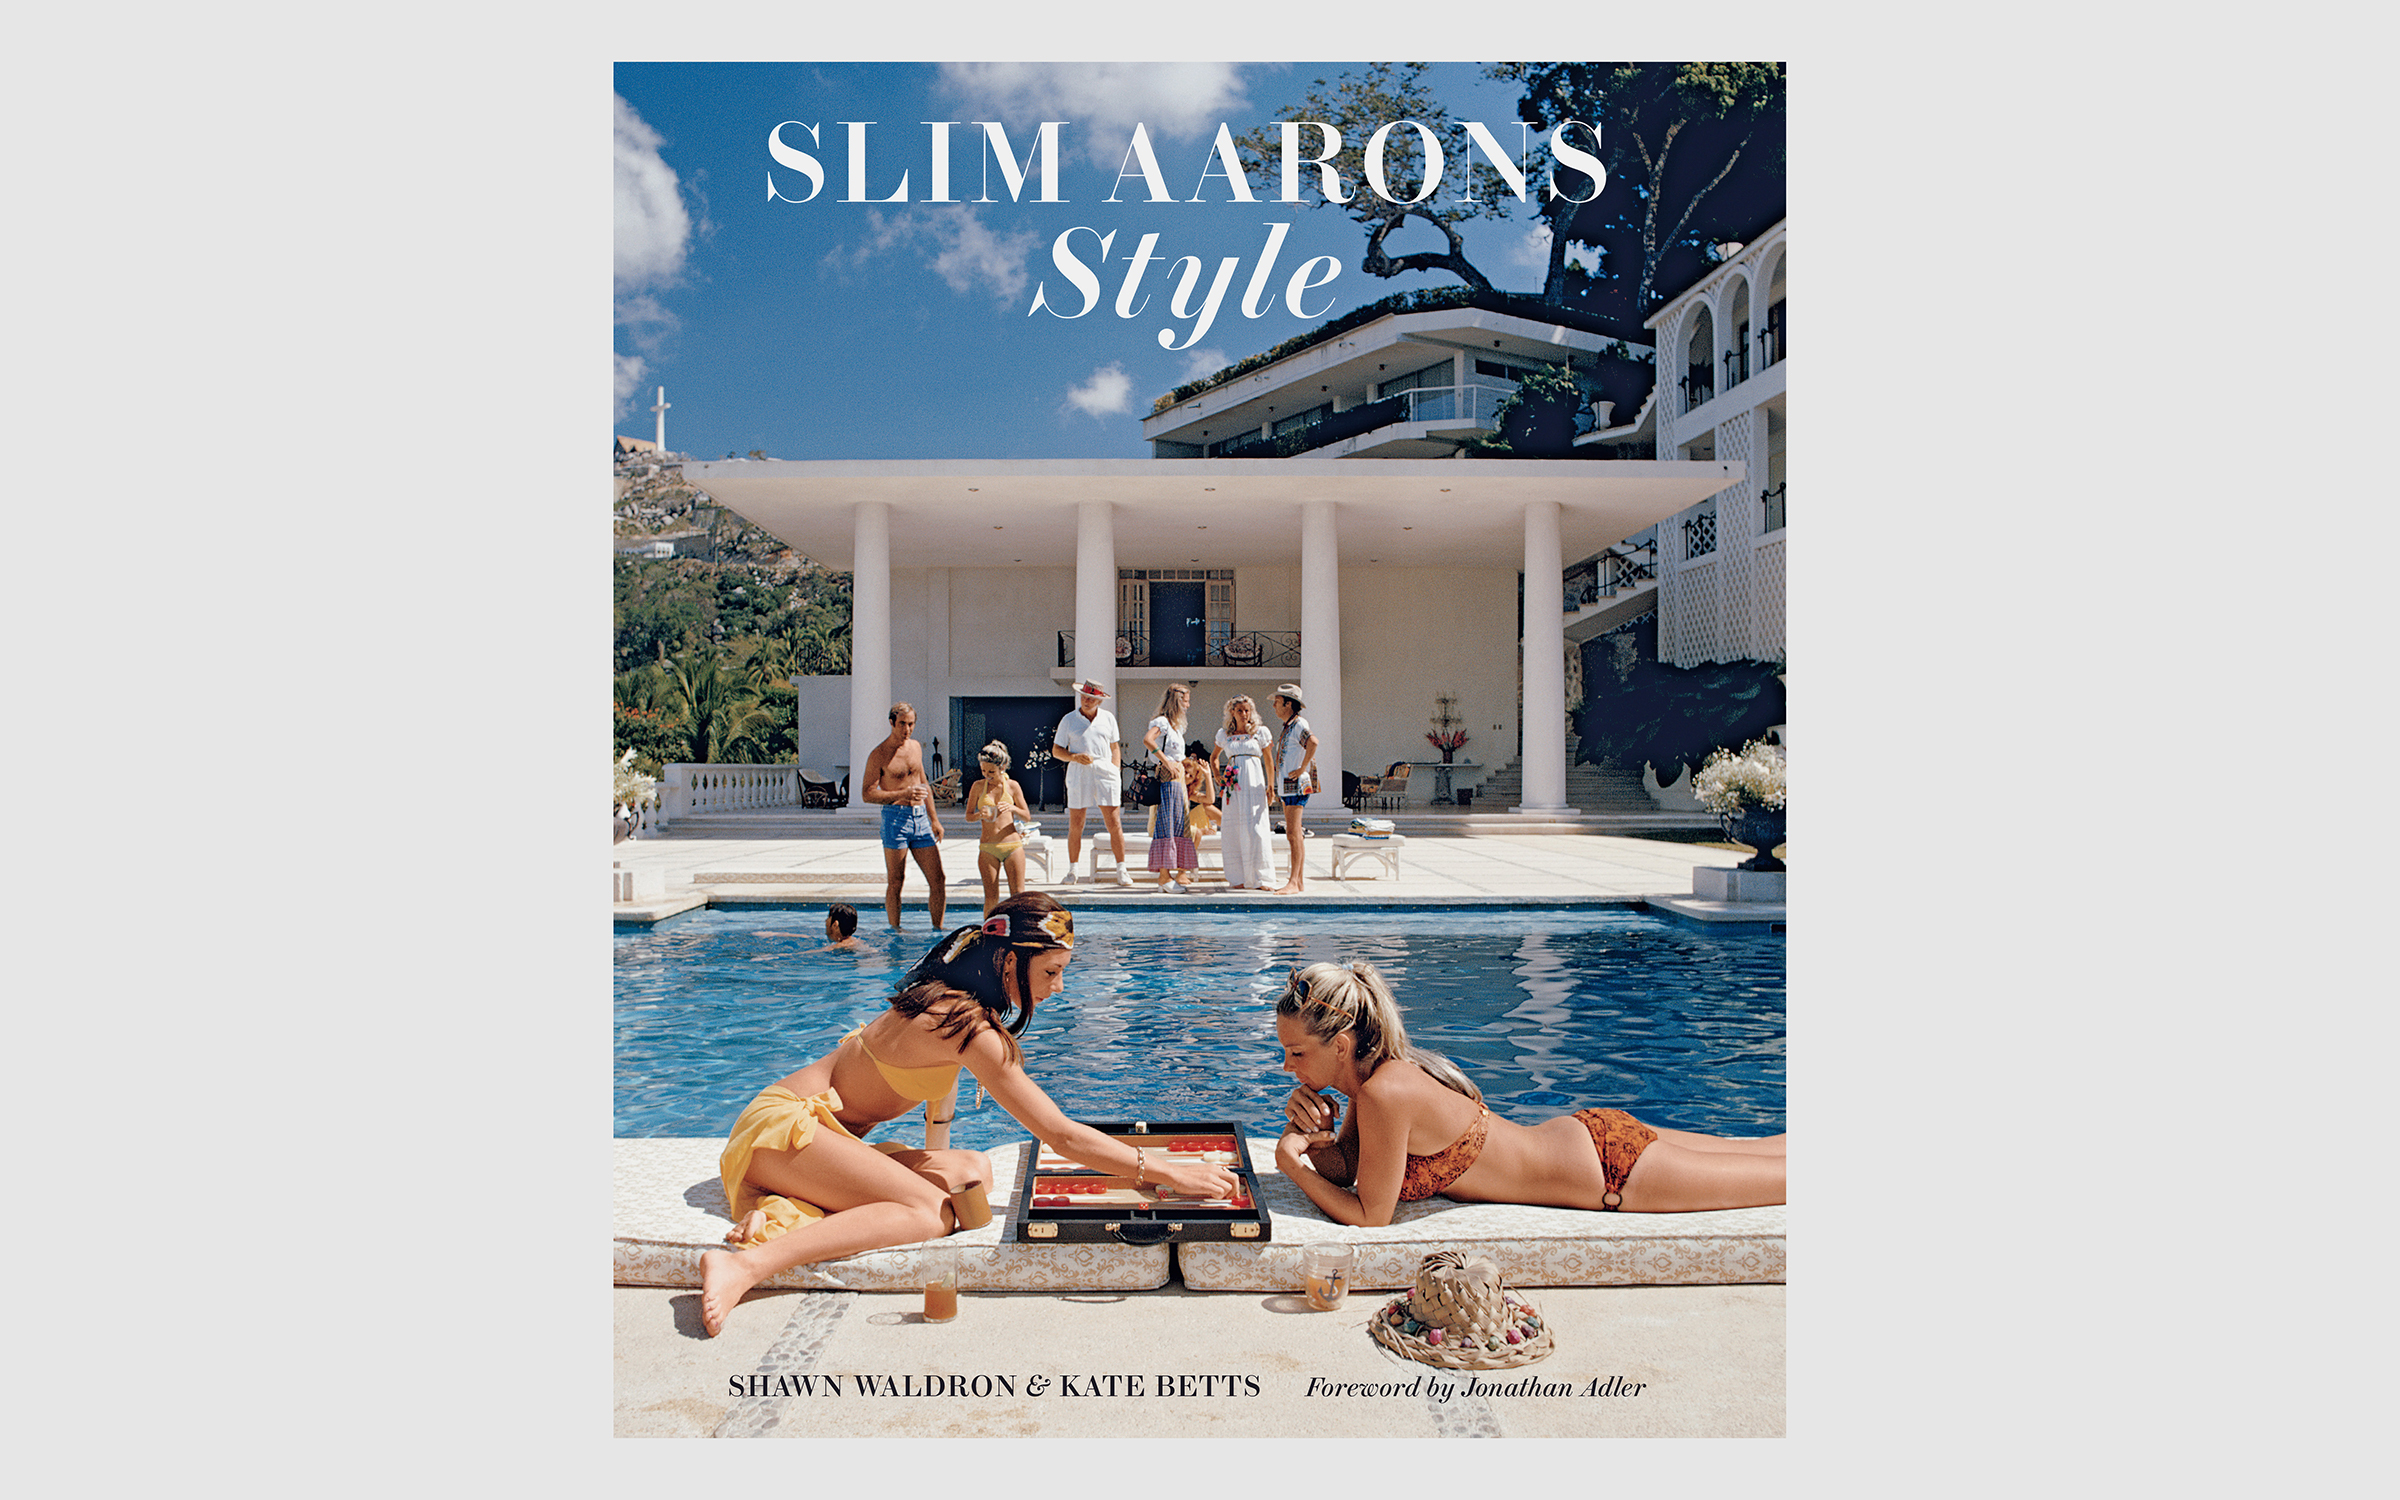 The cover of Slim Aarons: Style, the latest chapter of books featuring the lost world Aarons captured. It features women in bikinis lounging by a pool